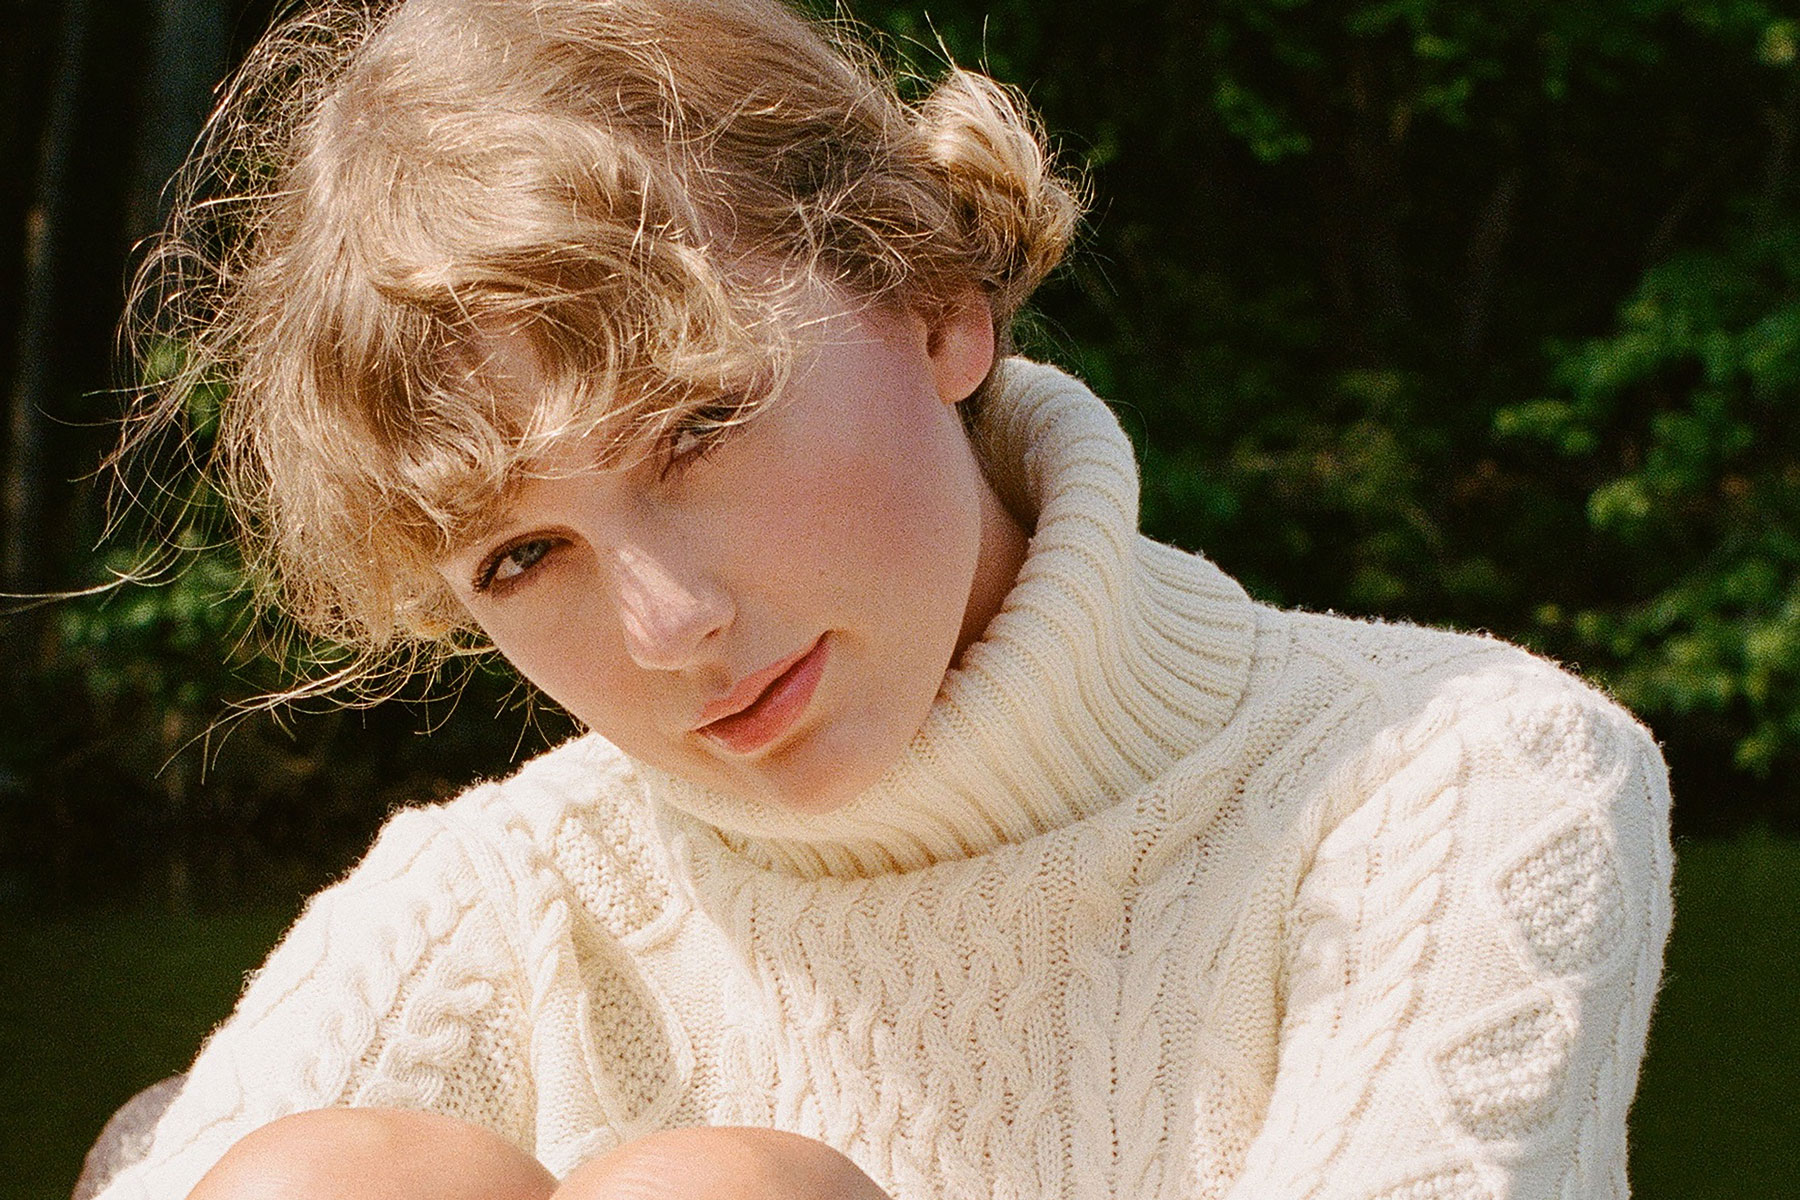 Taylor Swift Dropped an Album. Now She's Going to Sell Cardigans - Rolling Stone